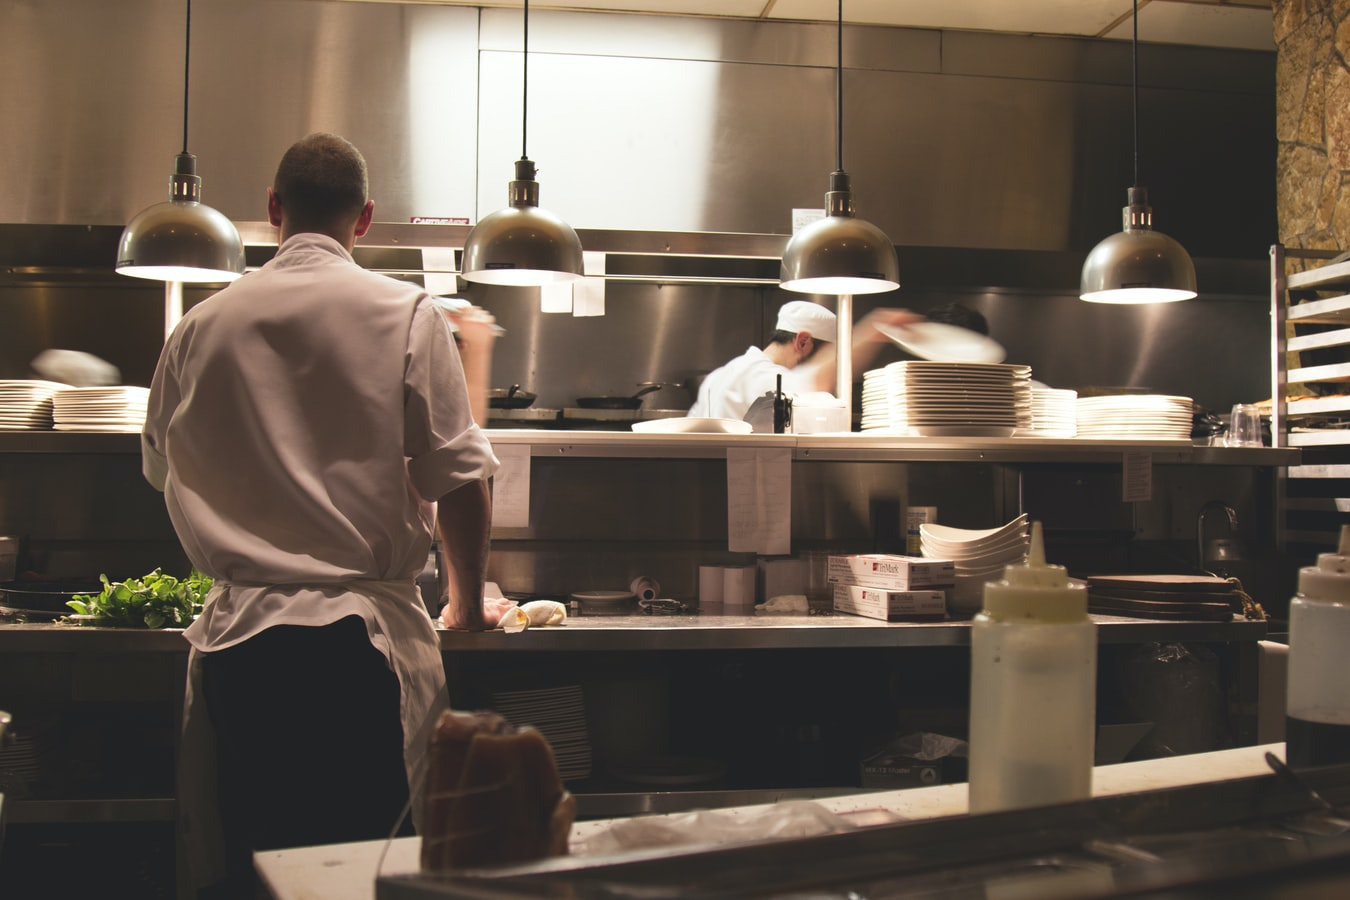 Restaurant cooks and chefs hard at work